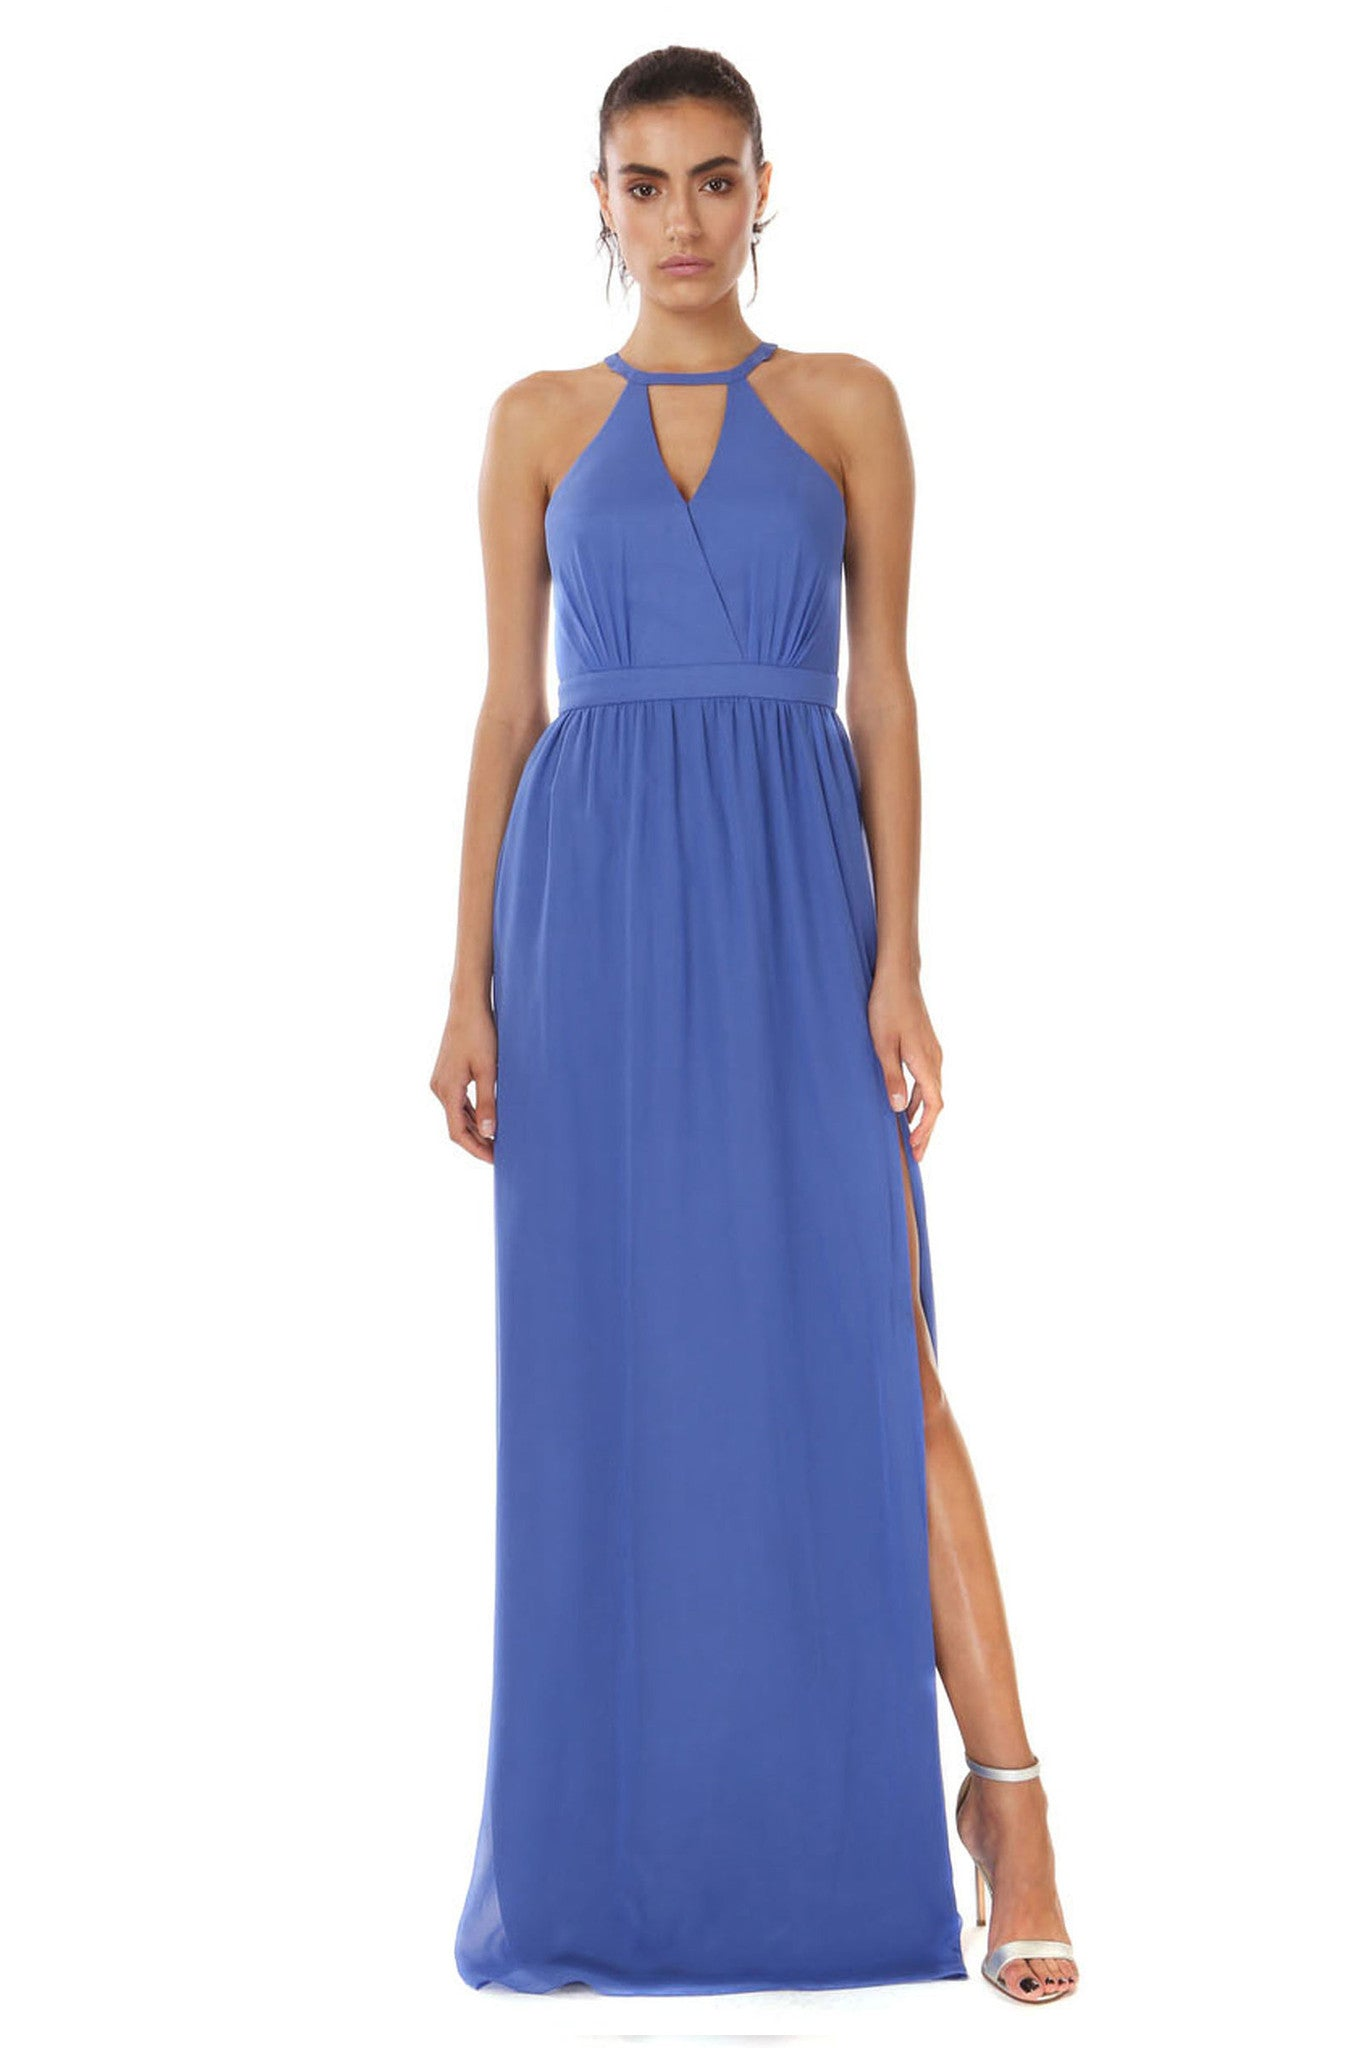 Jay Godfrey Marina Blue Grecian Gown - Front View